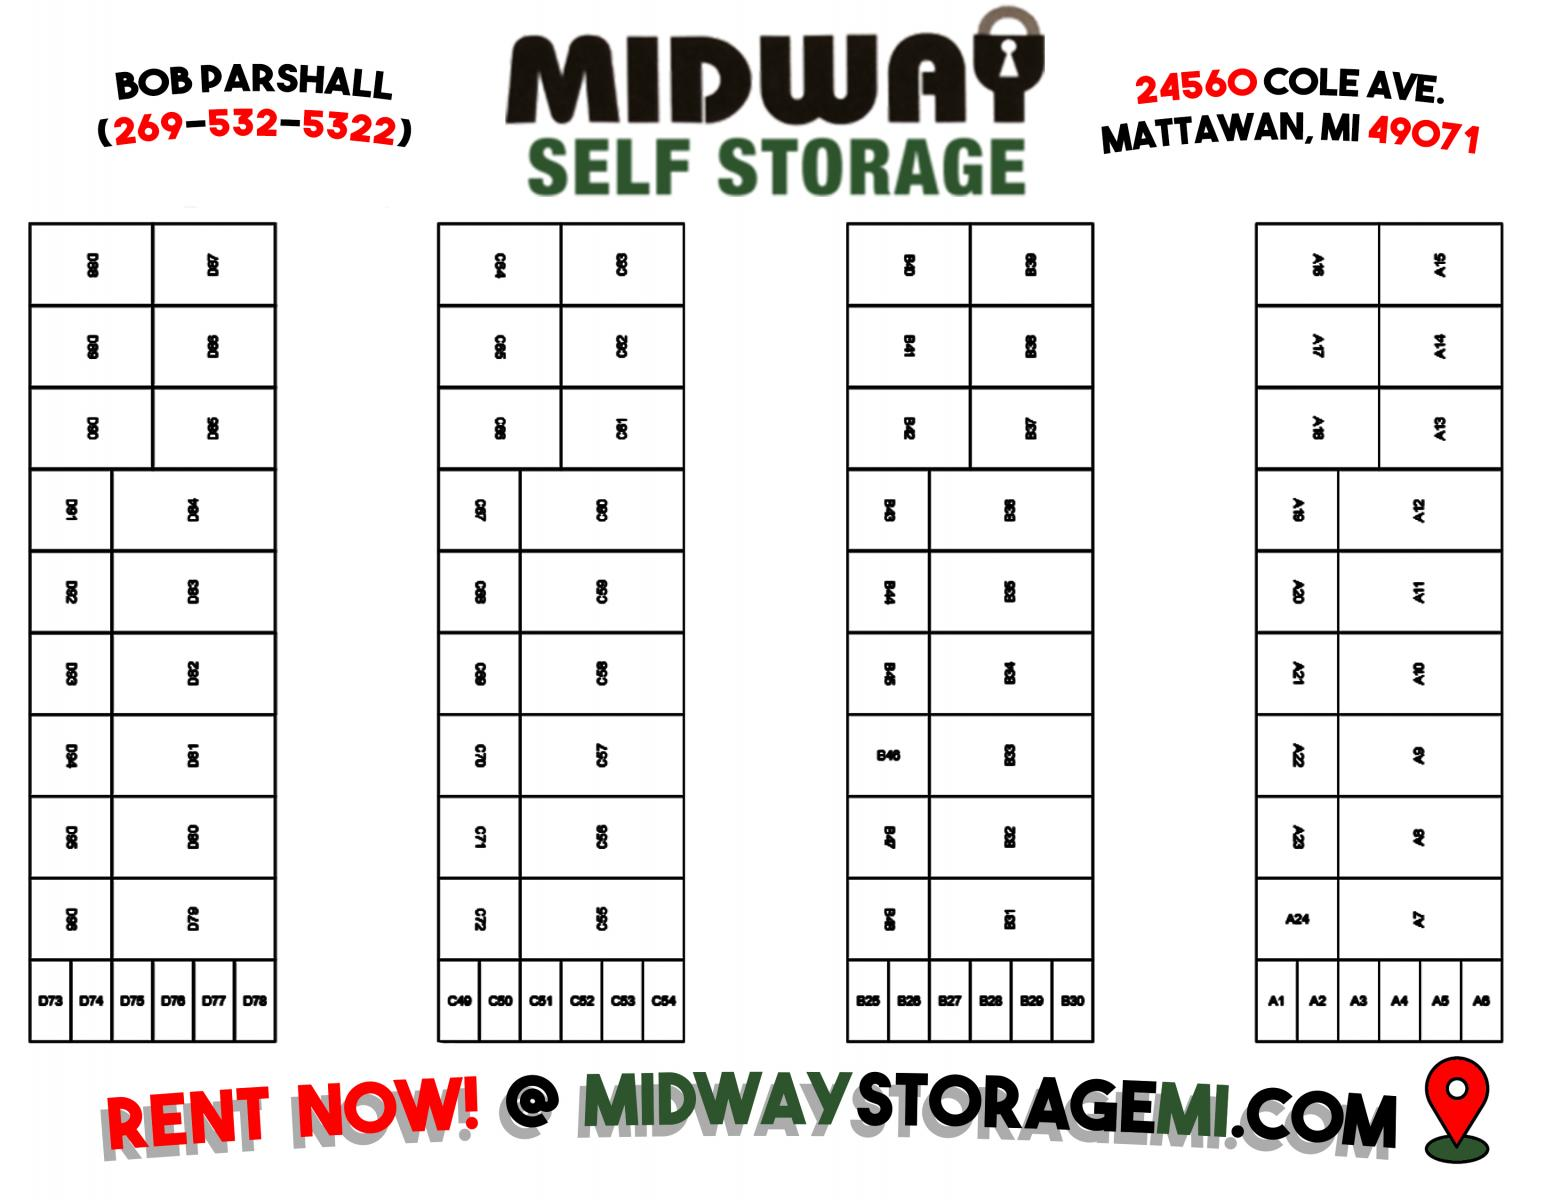 Midway Self Storage facility map